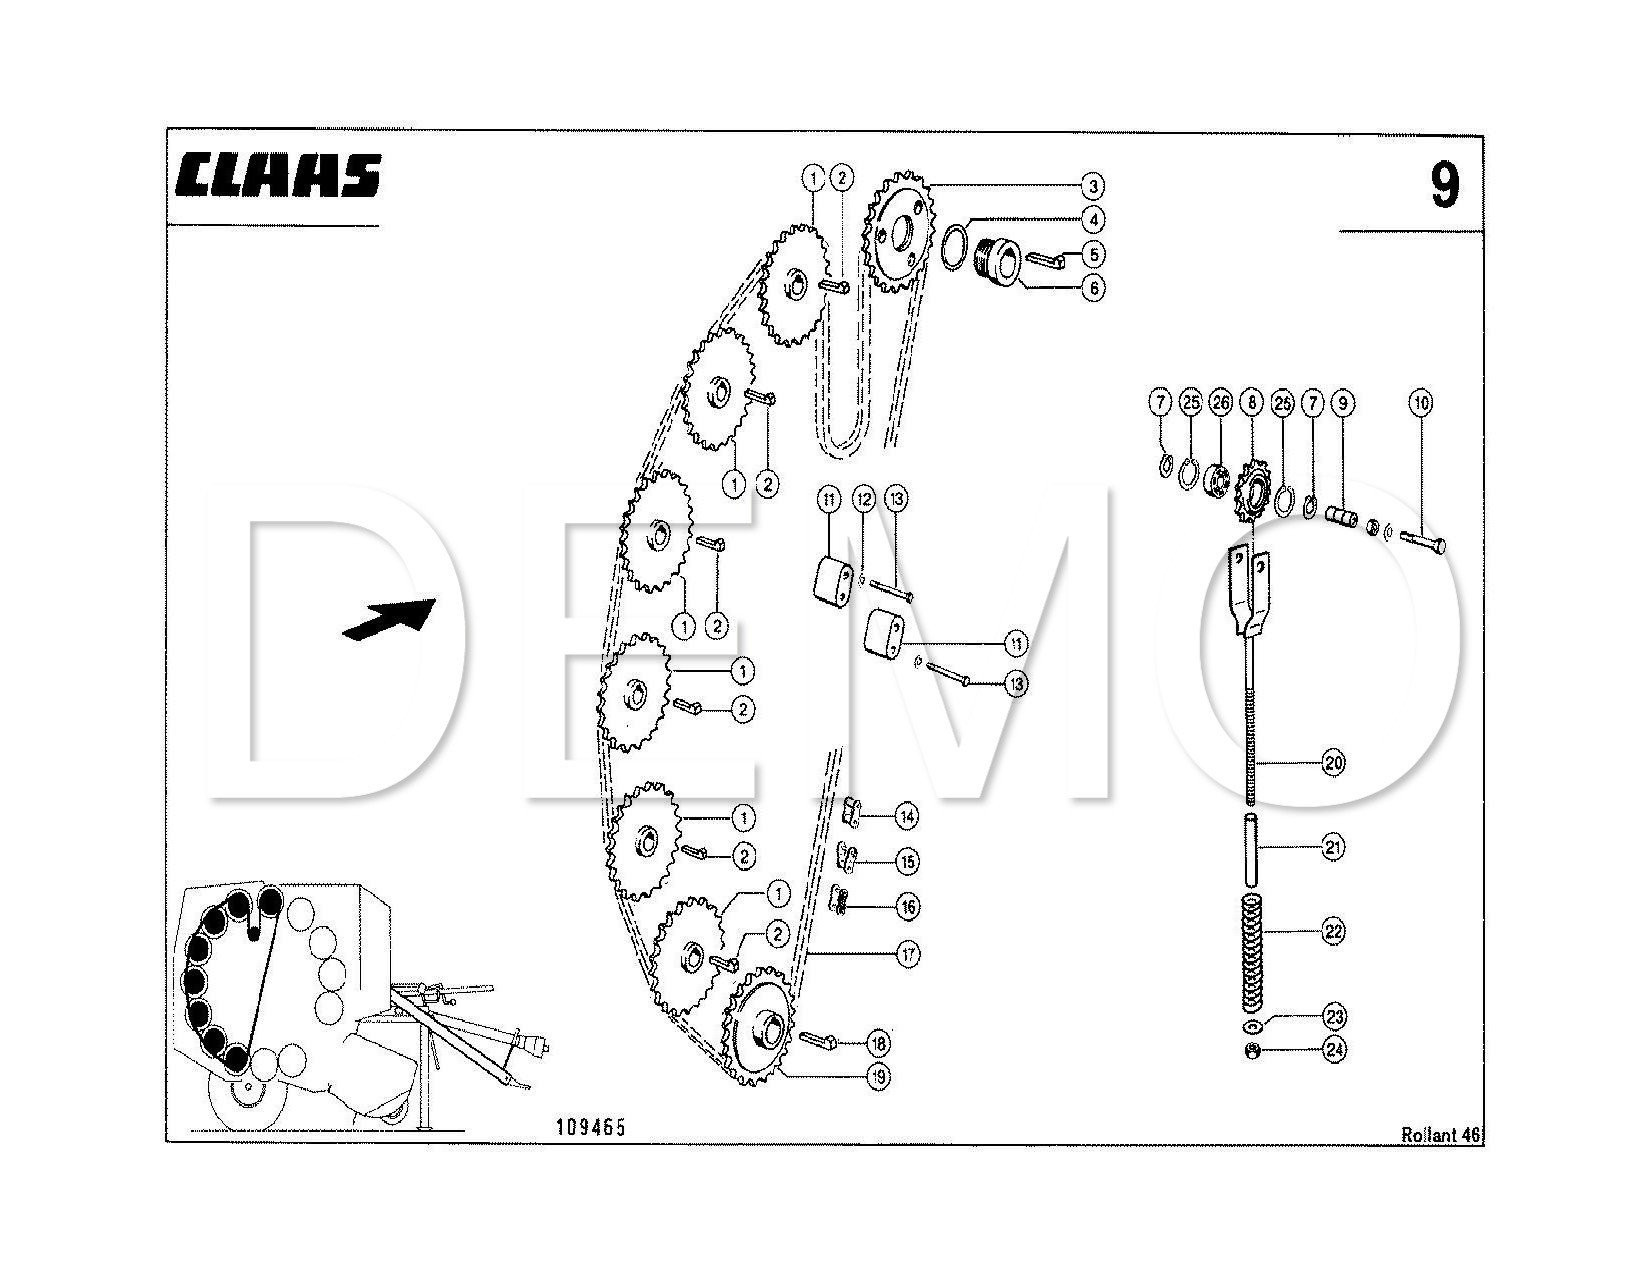 Car Parts Diagram Pdf Claas Rollant 340 Parts Catalogue Spares Manual Pdf Catalog Of Car Parts Diagram Pdf